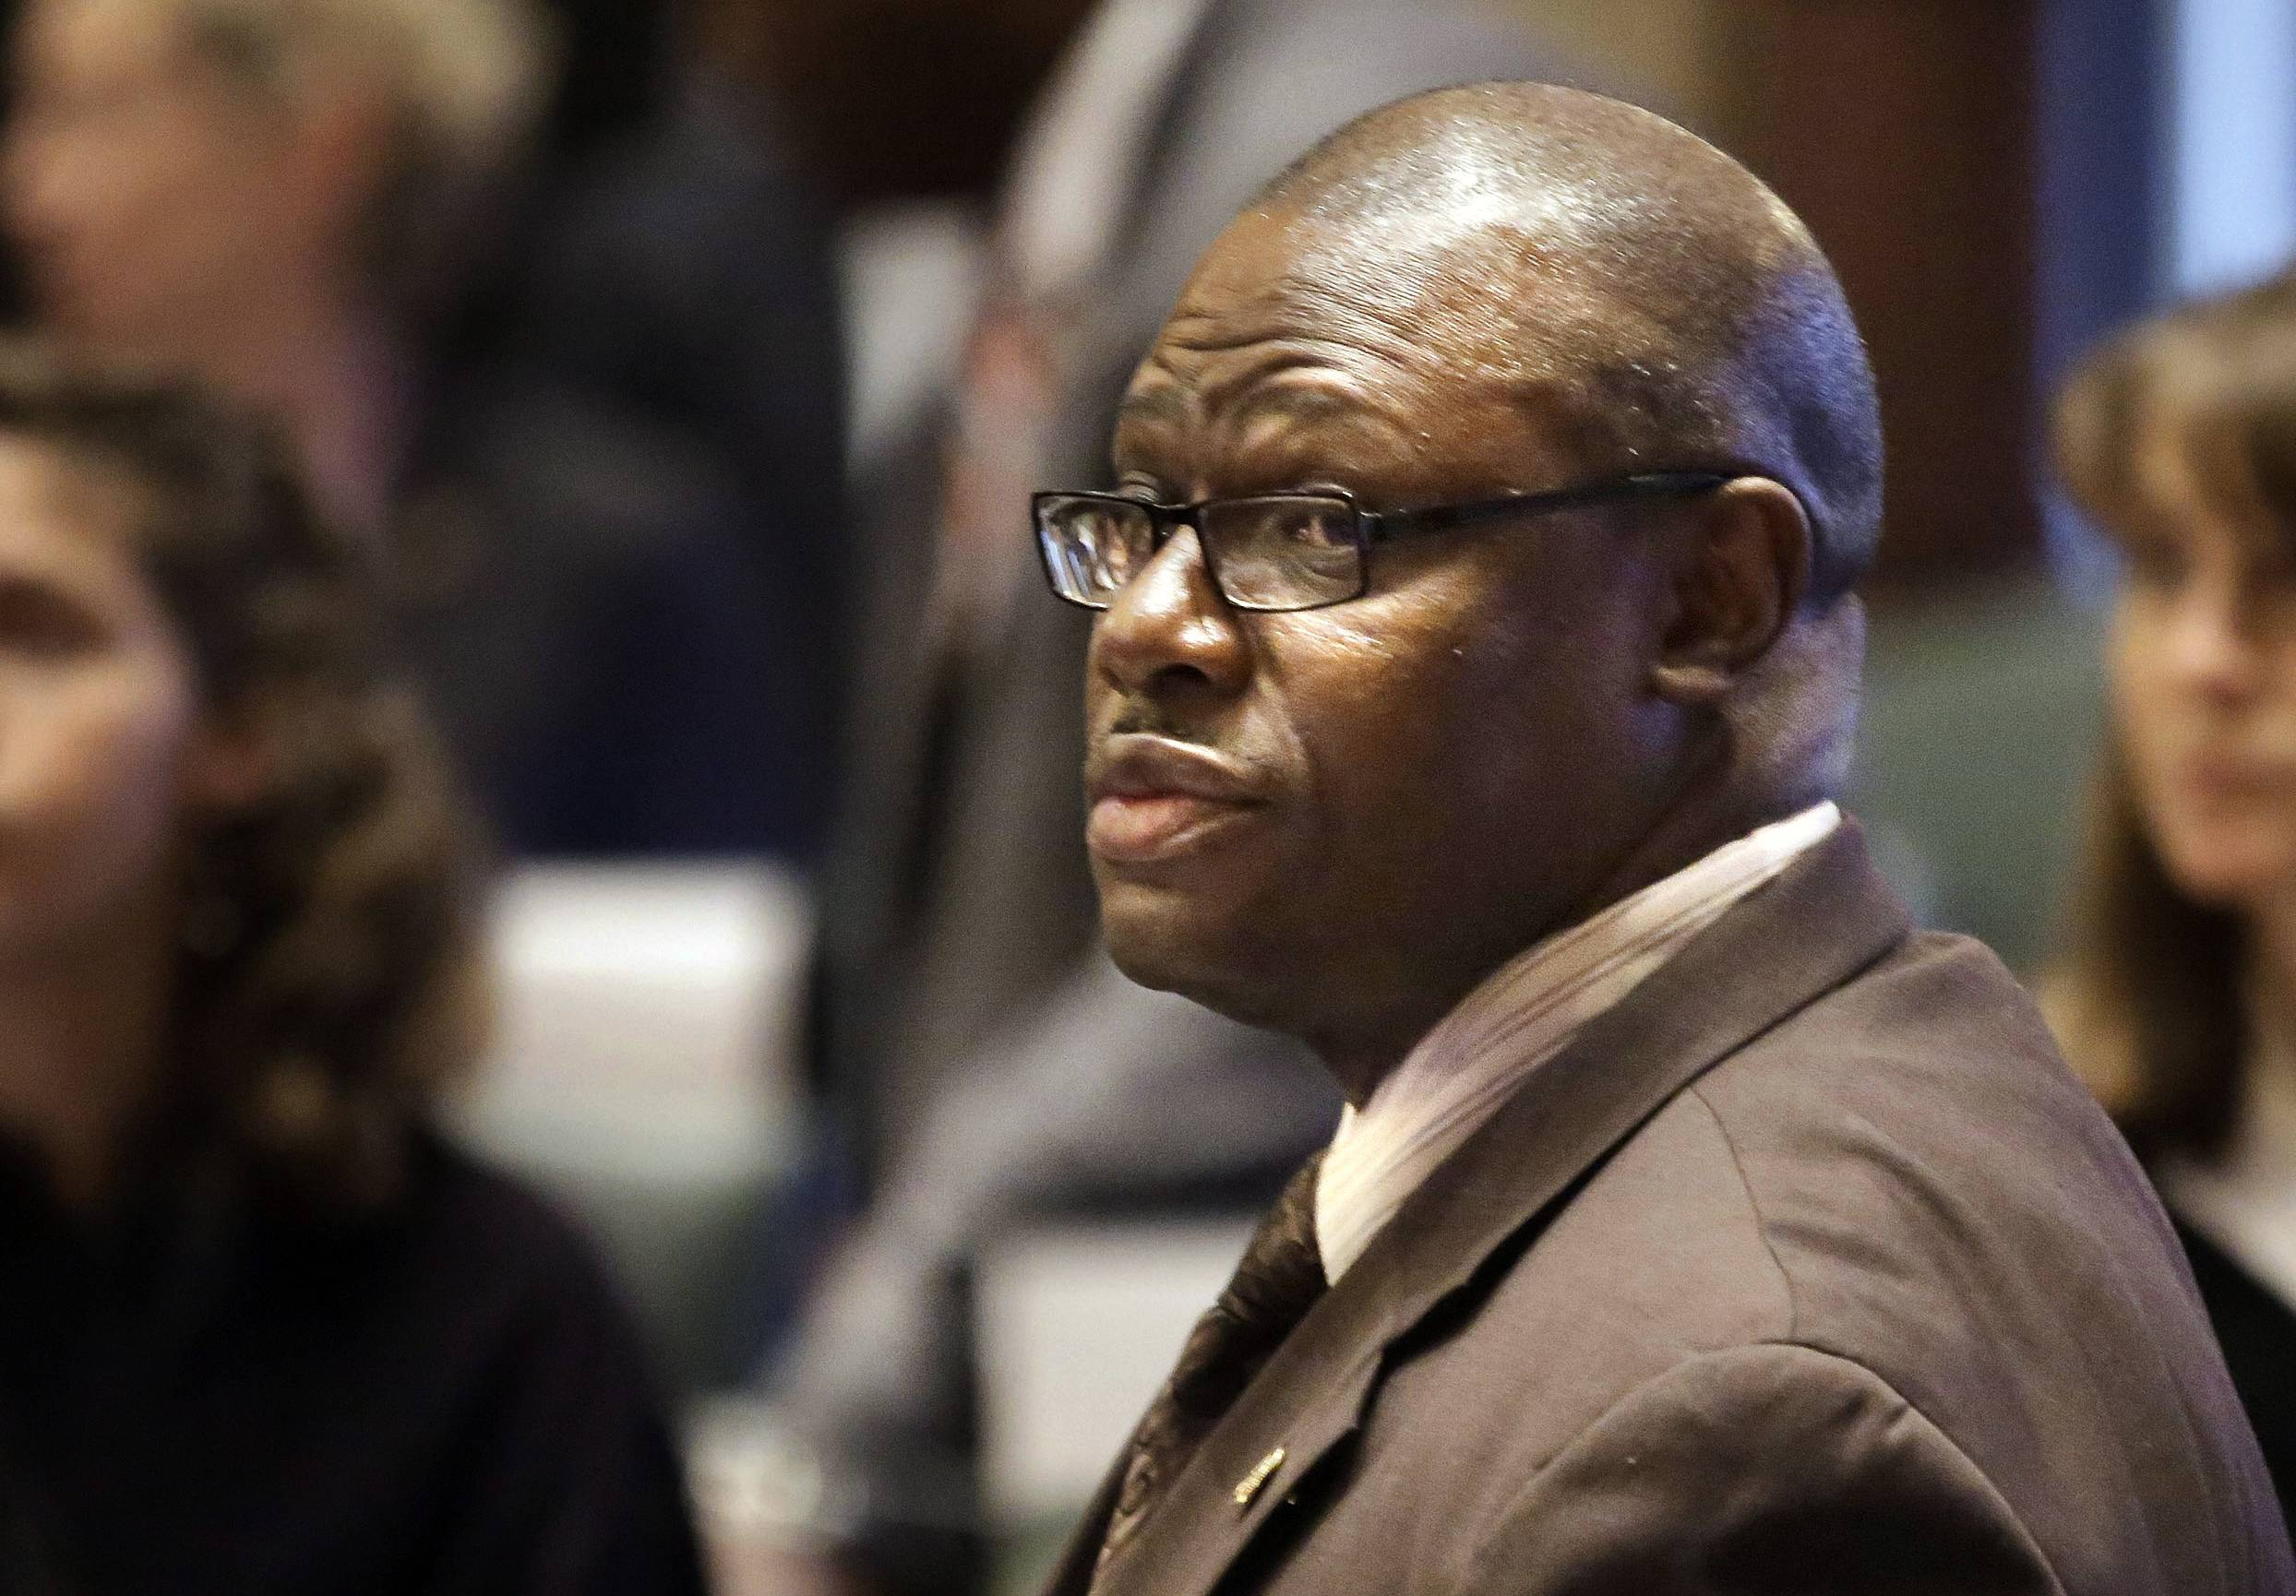 State Rep. Derrick Smith is charged with taking a $7,000 bribe from a day care operator seeking a state grant.